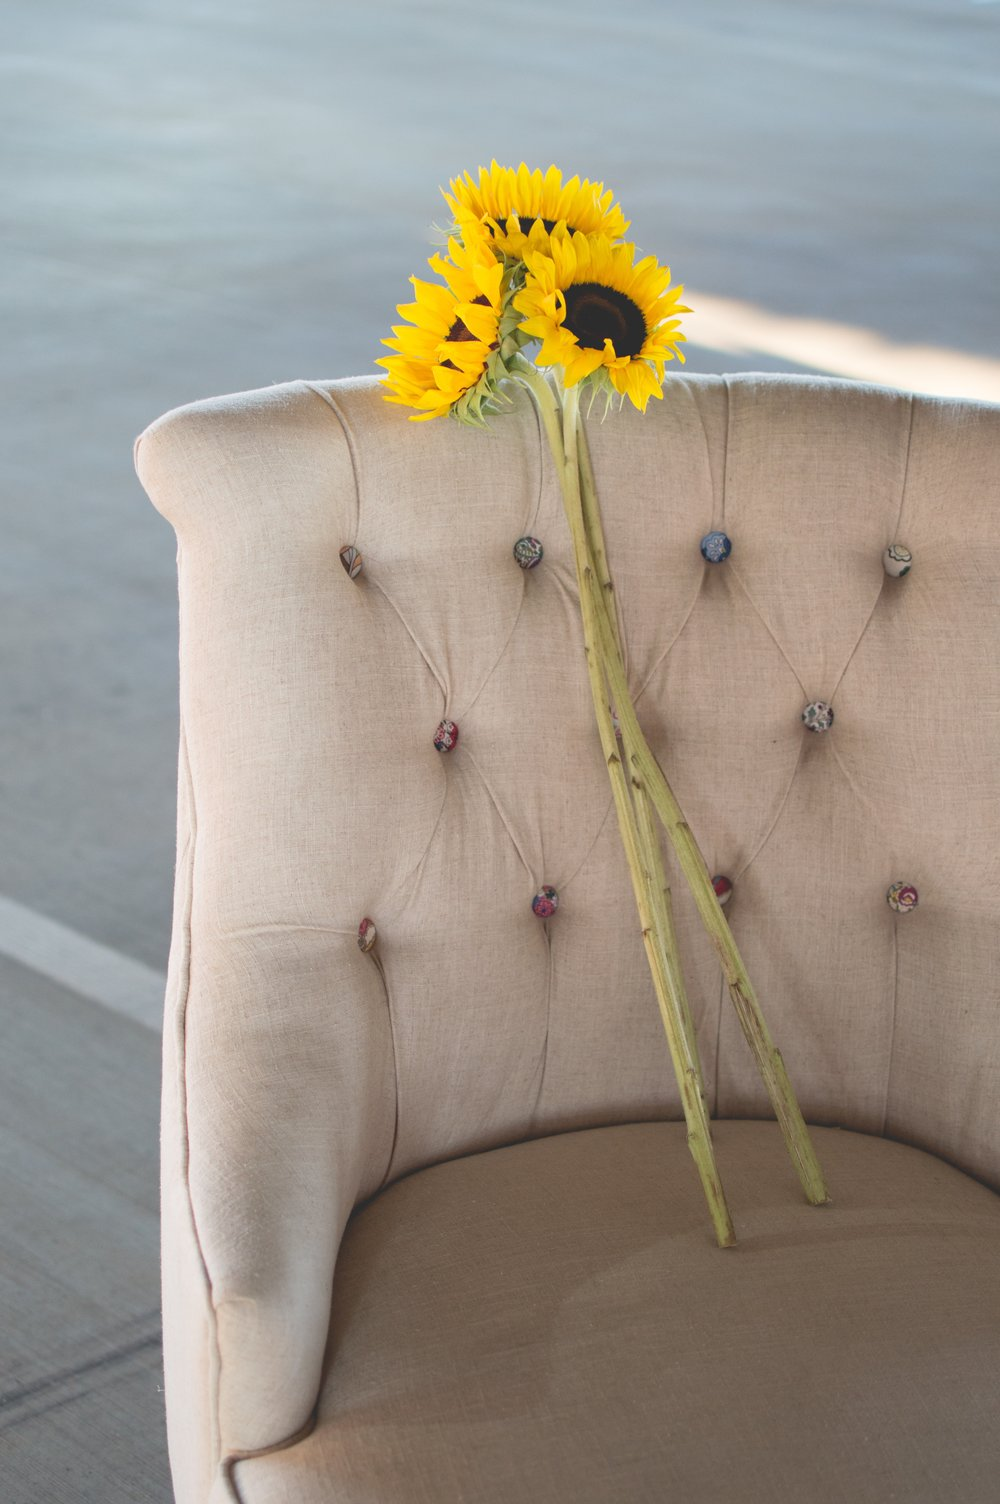 Beige Chair with Yellow Sun Flower